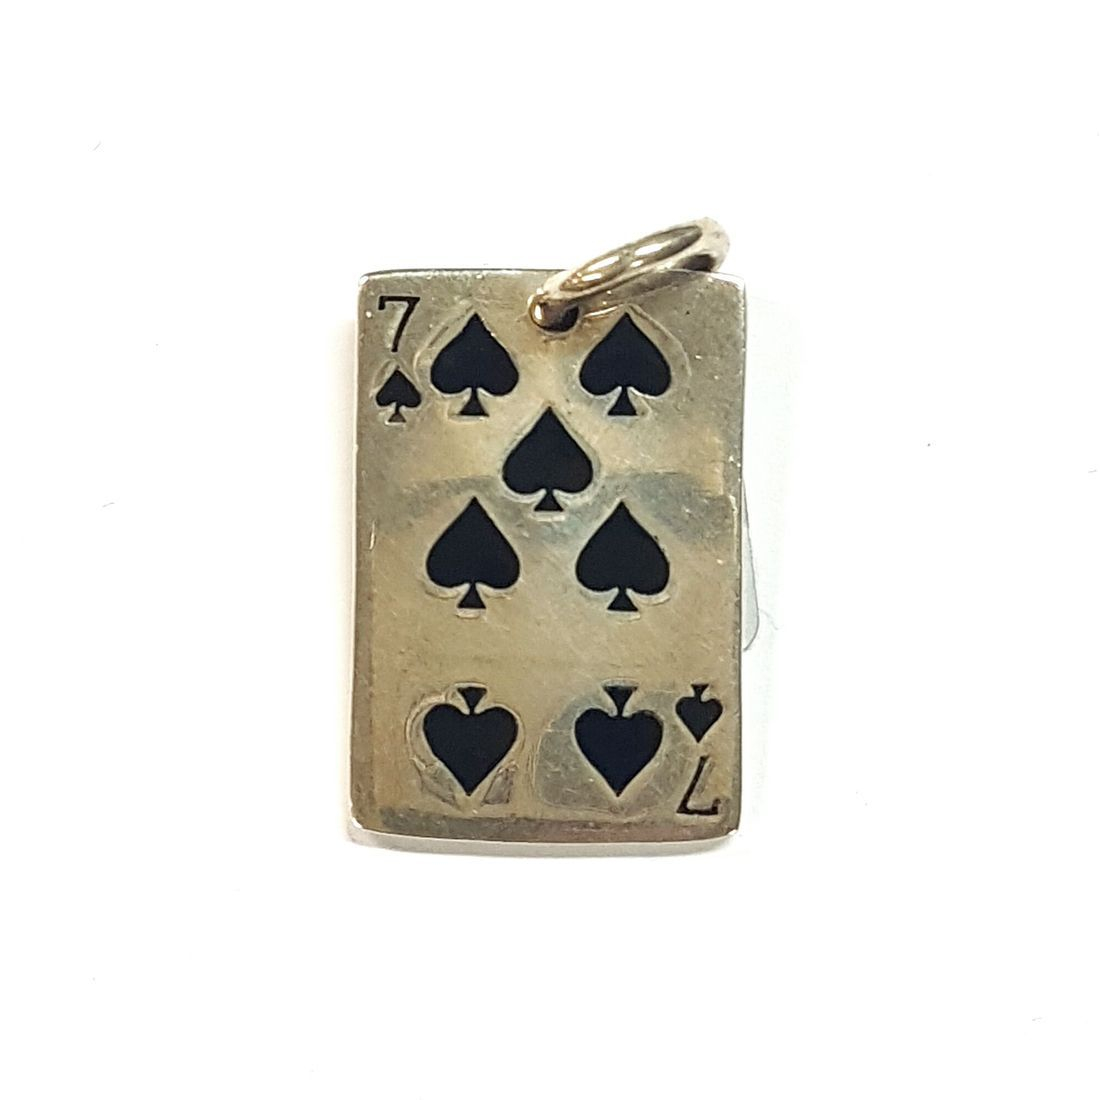 7 of spades Pendant  available at Kazbah online and our Leicester City Centre shop